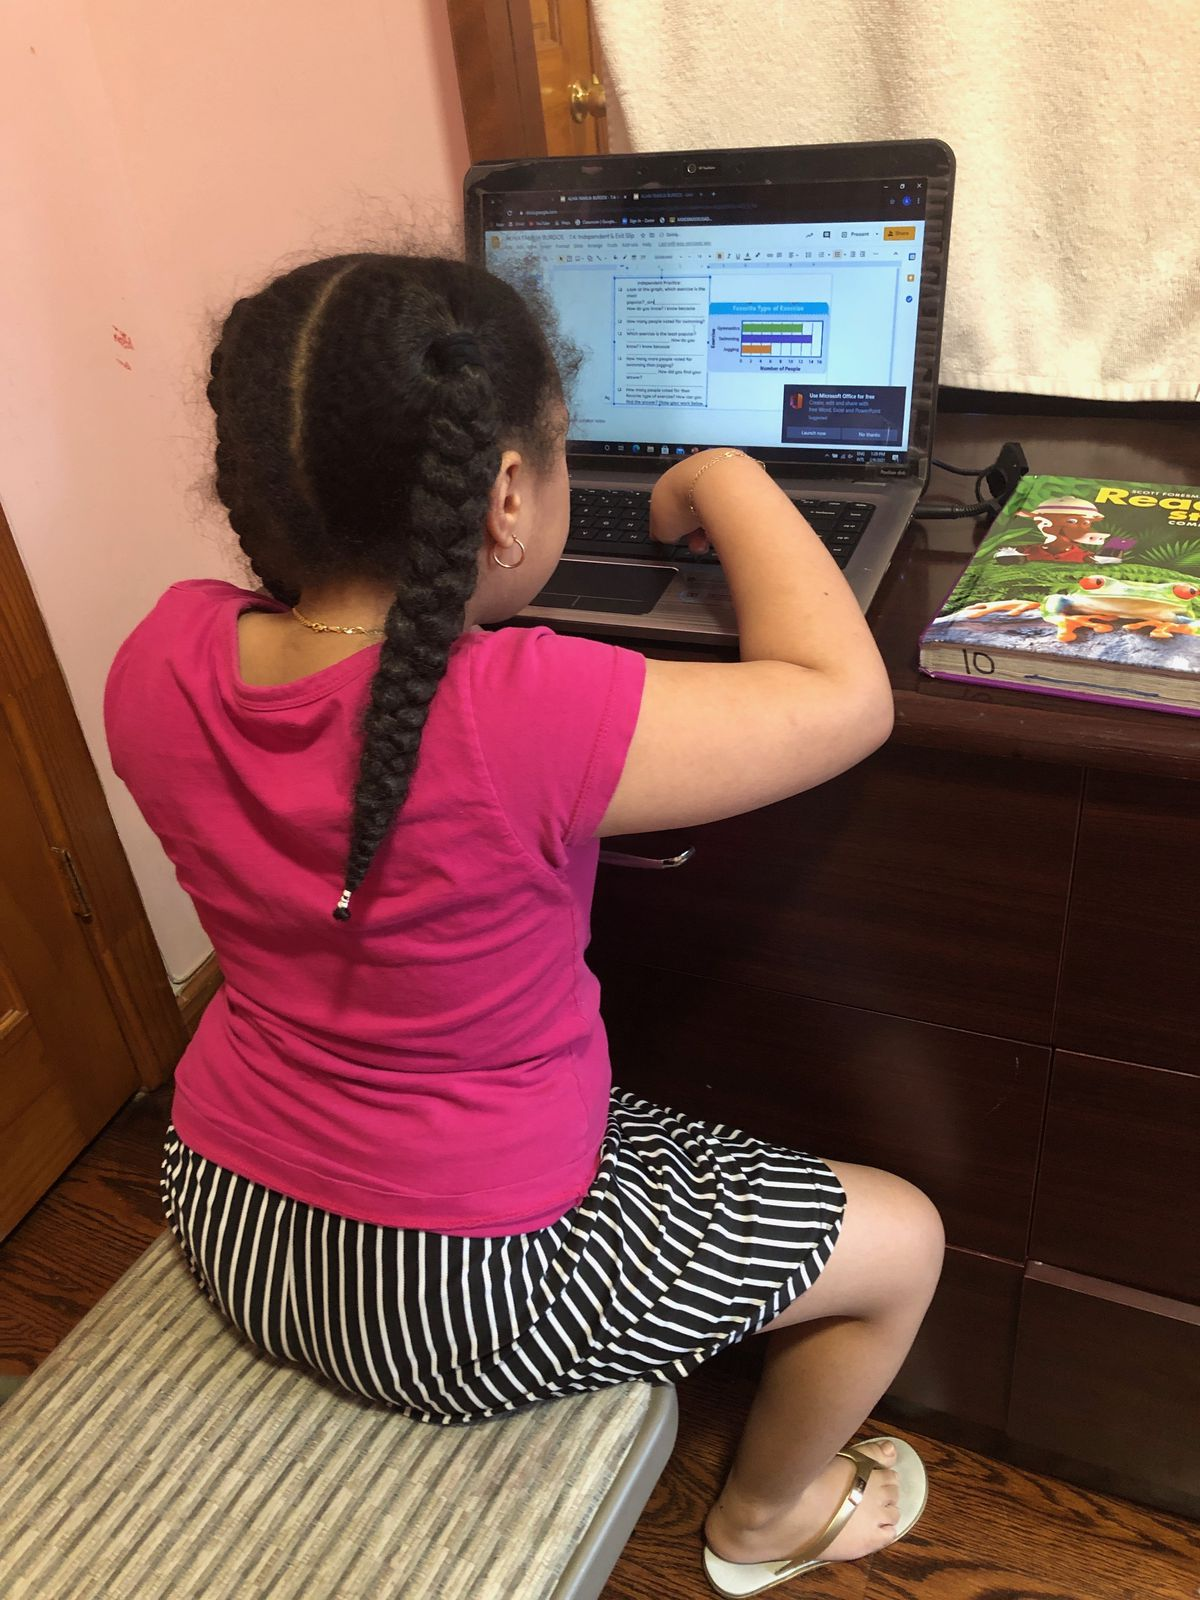 Alhia, 8, is enrolled at P.S. 330 in Corona, Queens. She learns from a laptop propped on her dresser in her bedroom.